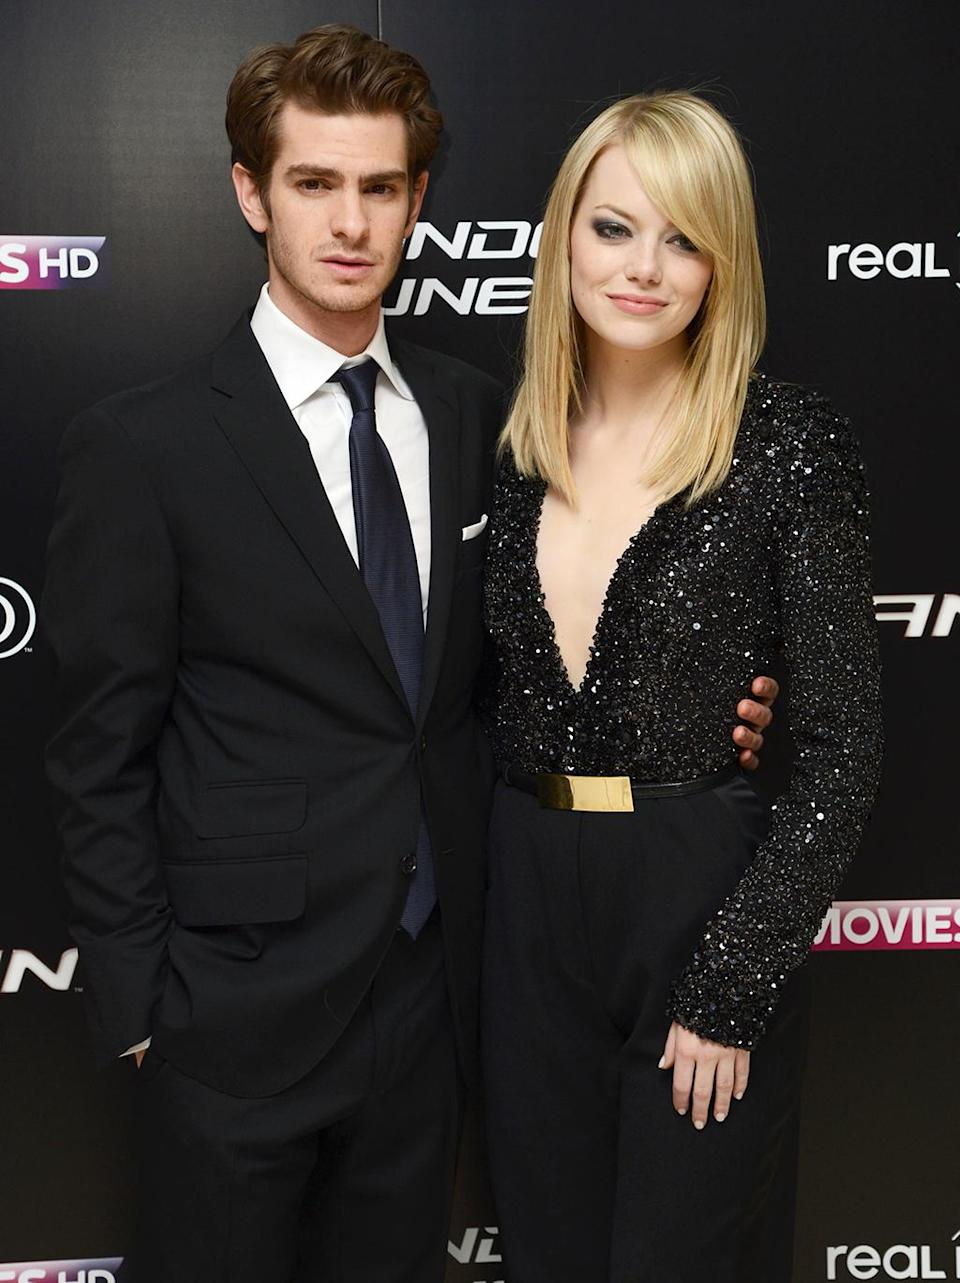 <p>Andrew Garfield and Stone began dating while filming <em>The Amazing Spider-Man.</em> The private couple posed together at the London premiere on June 18, 2012. (Photo: Dave Hogan/Getty Images) </p>